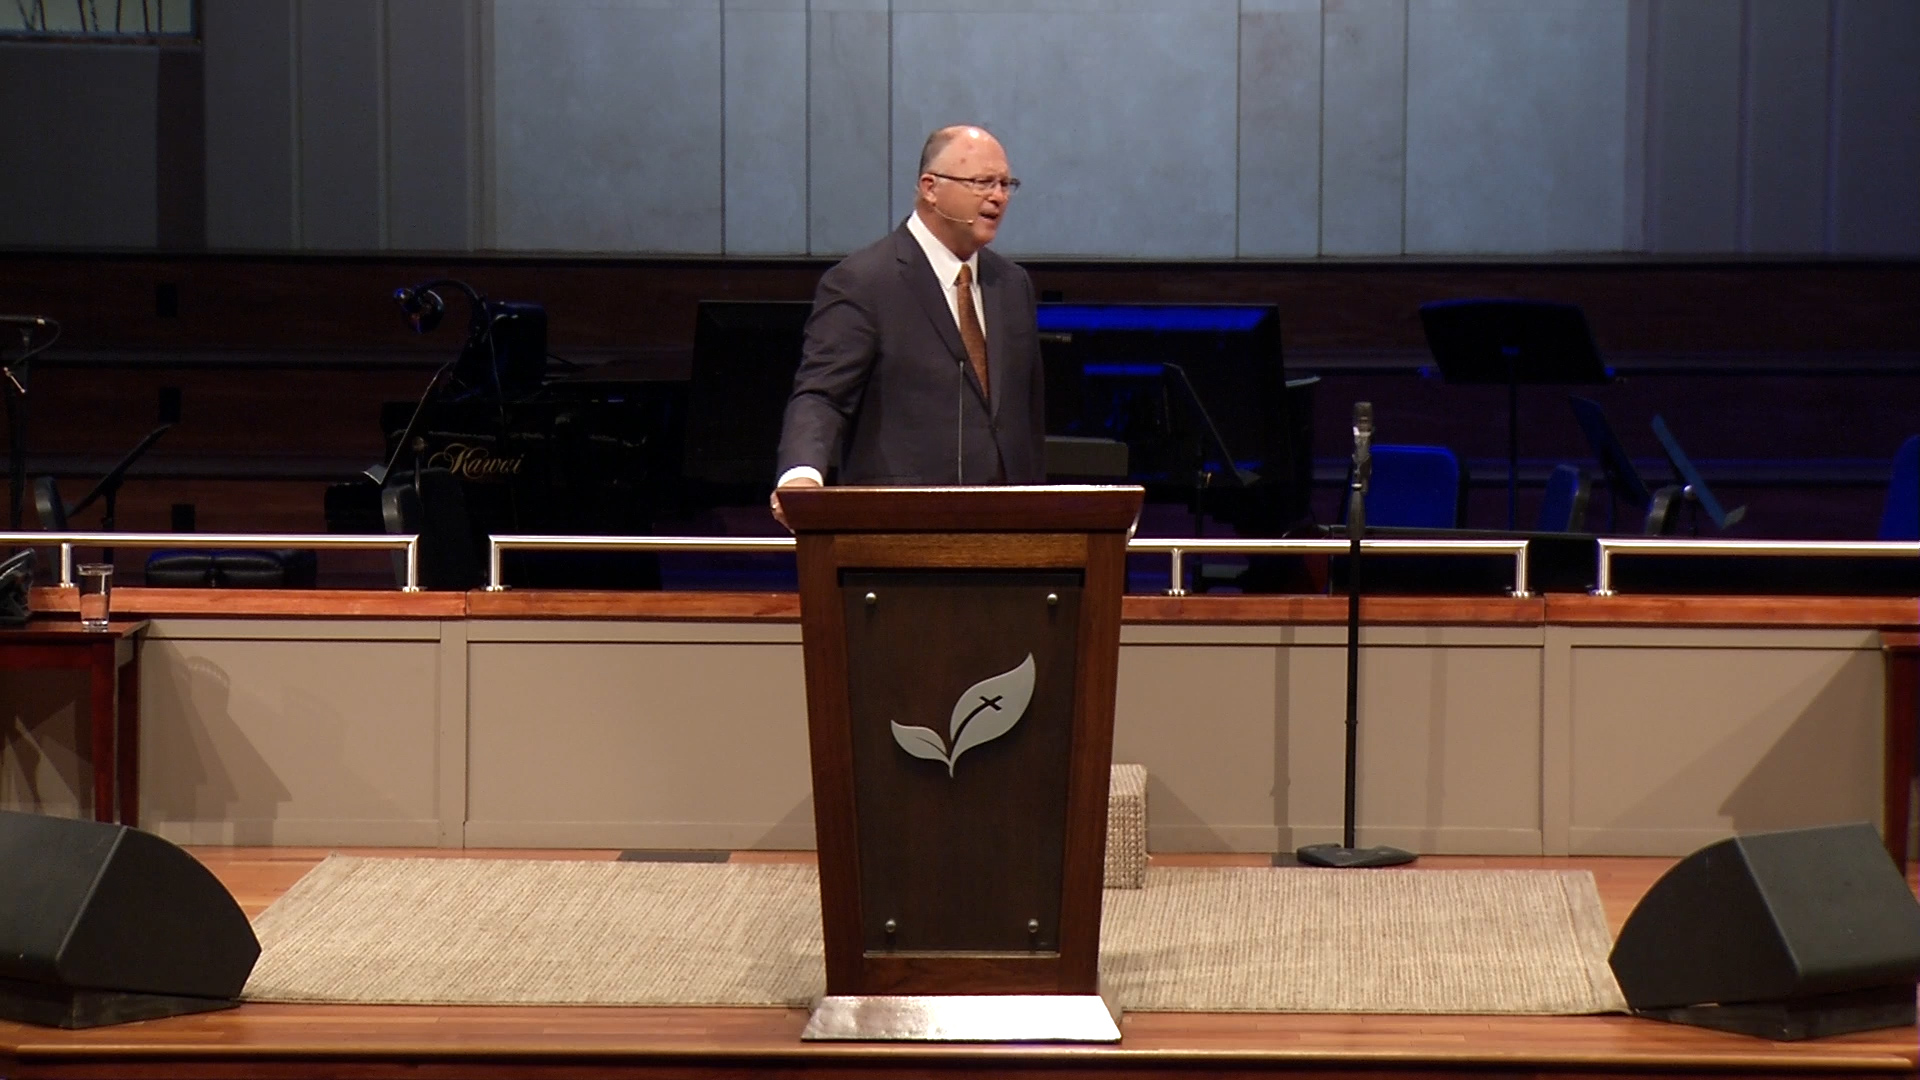 Pastor Paul Chappell: Happiness Is Giving Thanks